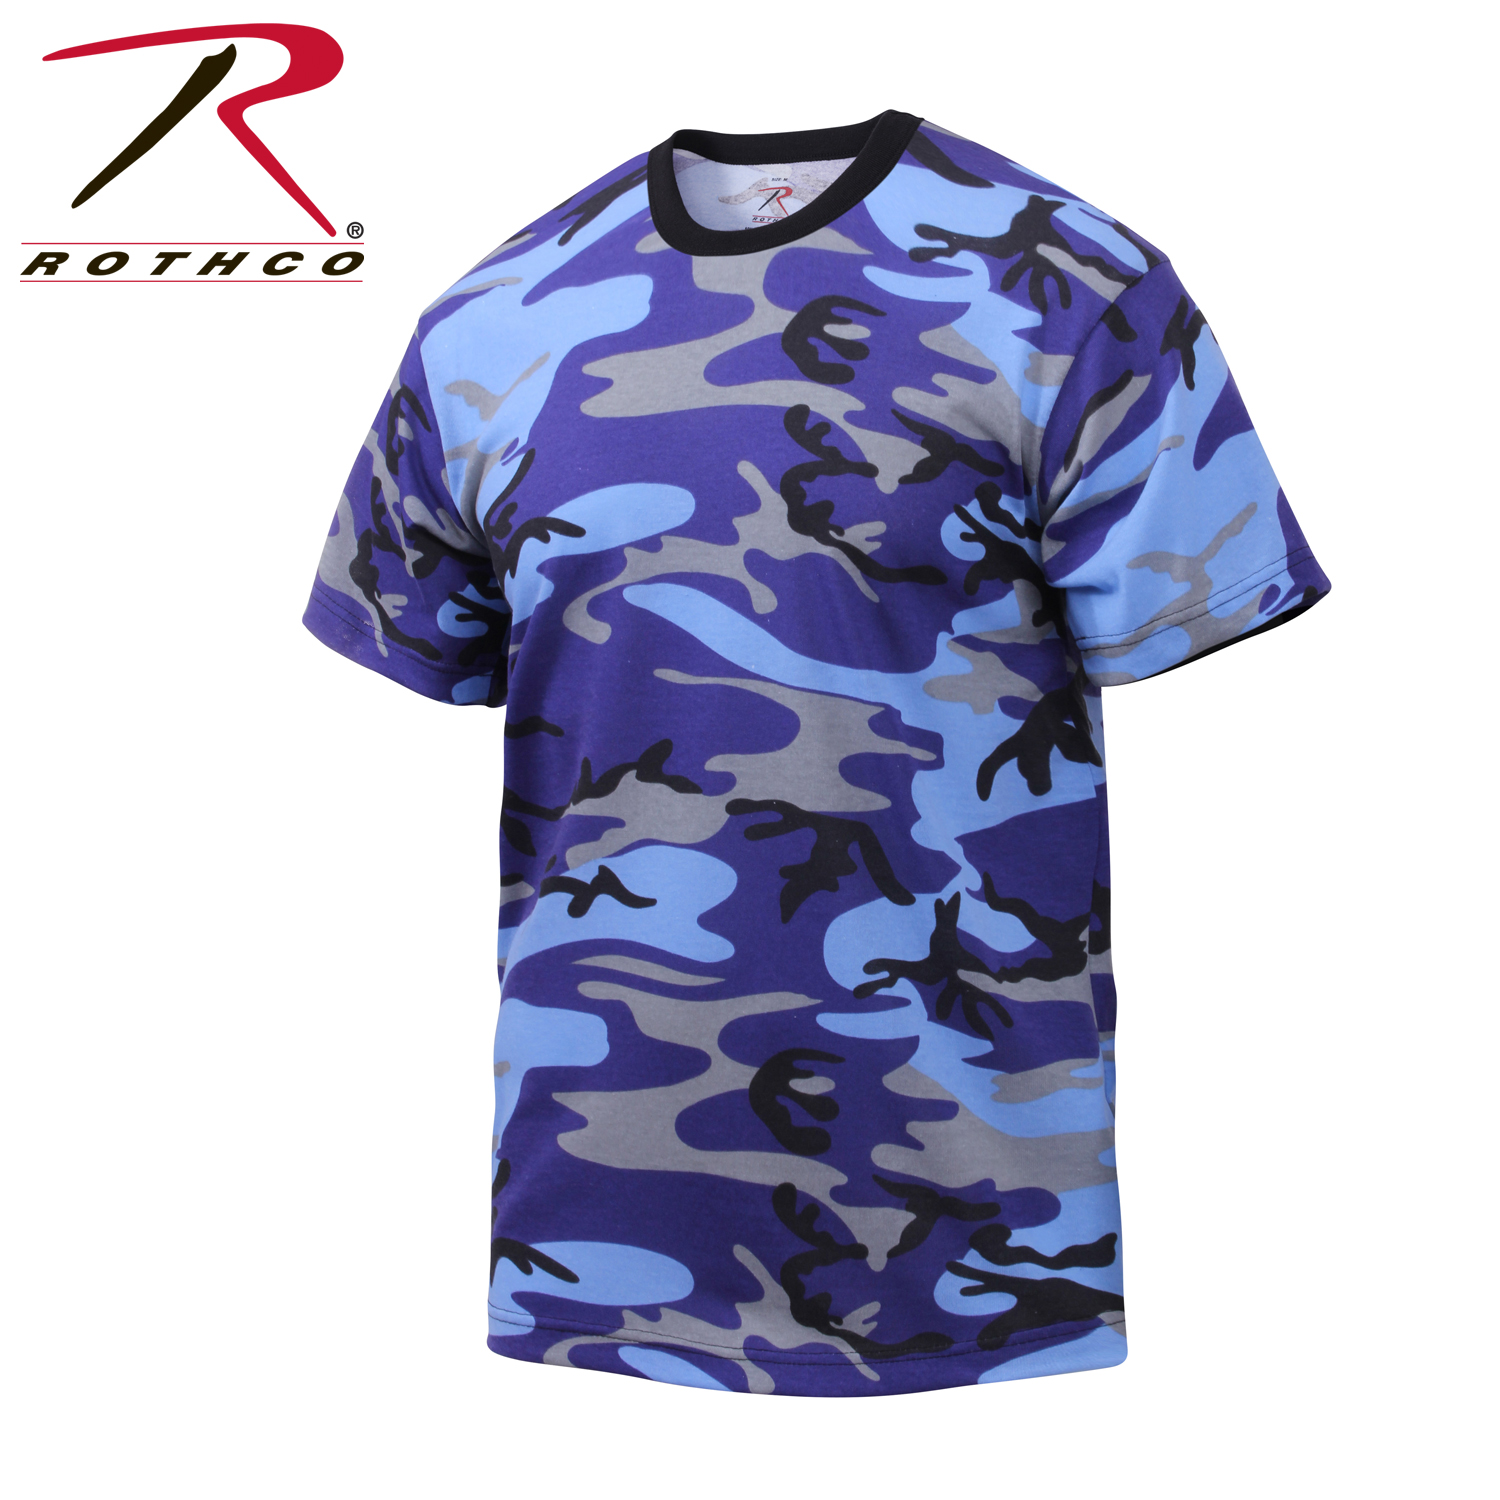 Details about Rothco 60173 Colored Camo T-Shirts - Electric Blue Camo 889fbe23995